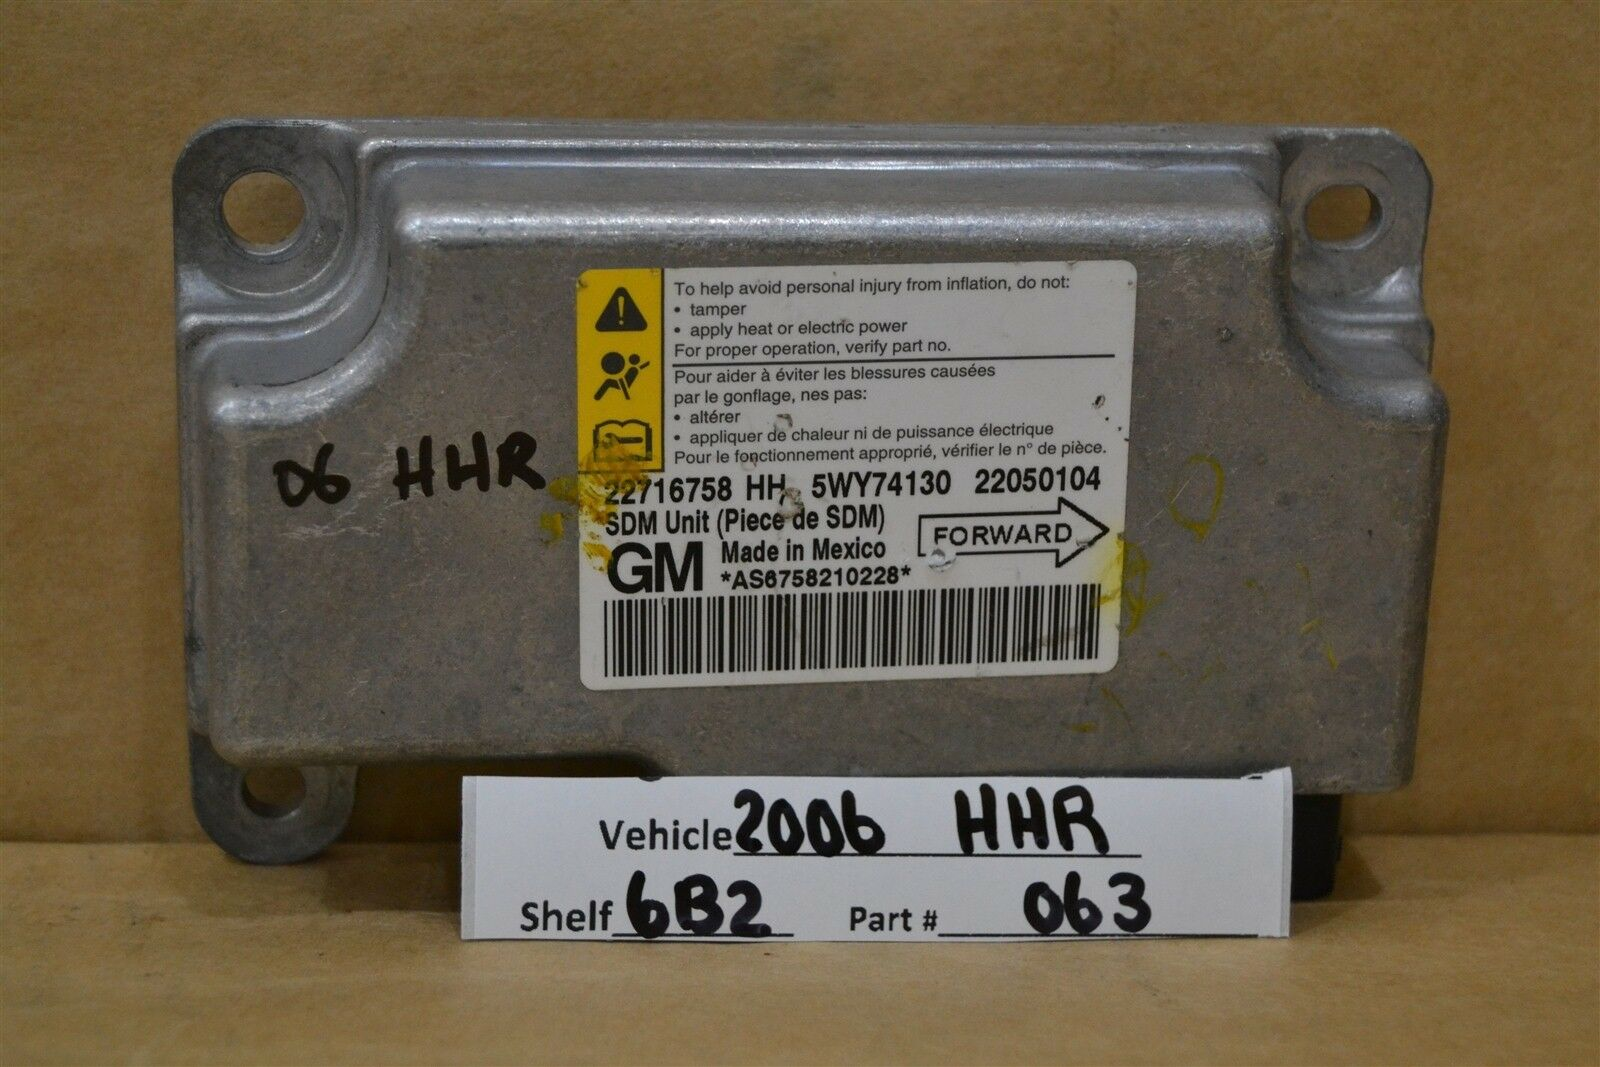 Used Chevrolet Hhr Computers Chips Cruise Control And Related Chevy Ecm 2006 Air Bag 22716758 Module 1963 6b2